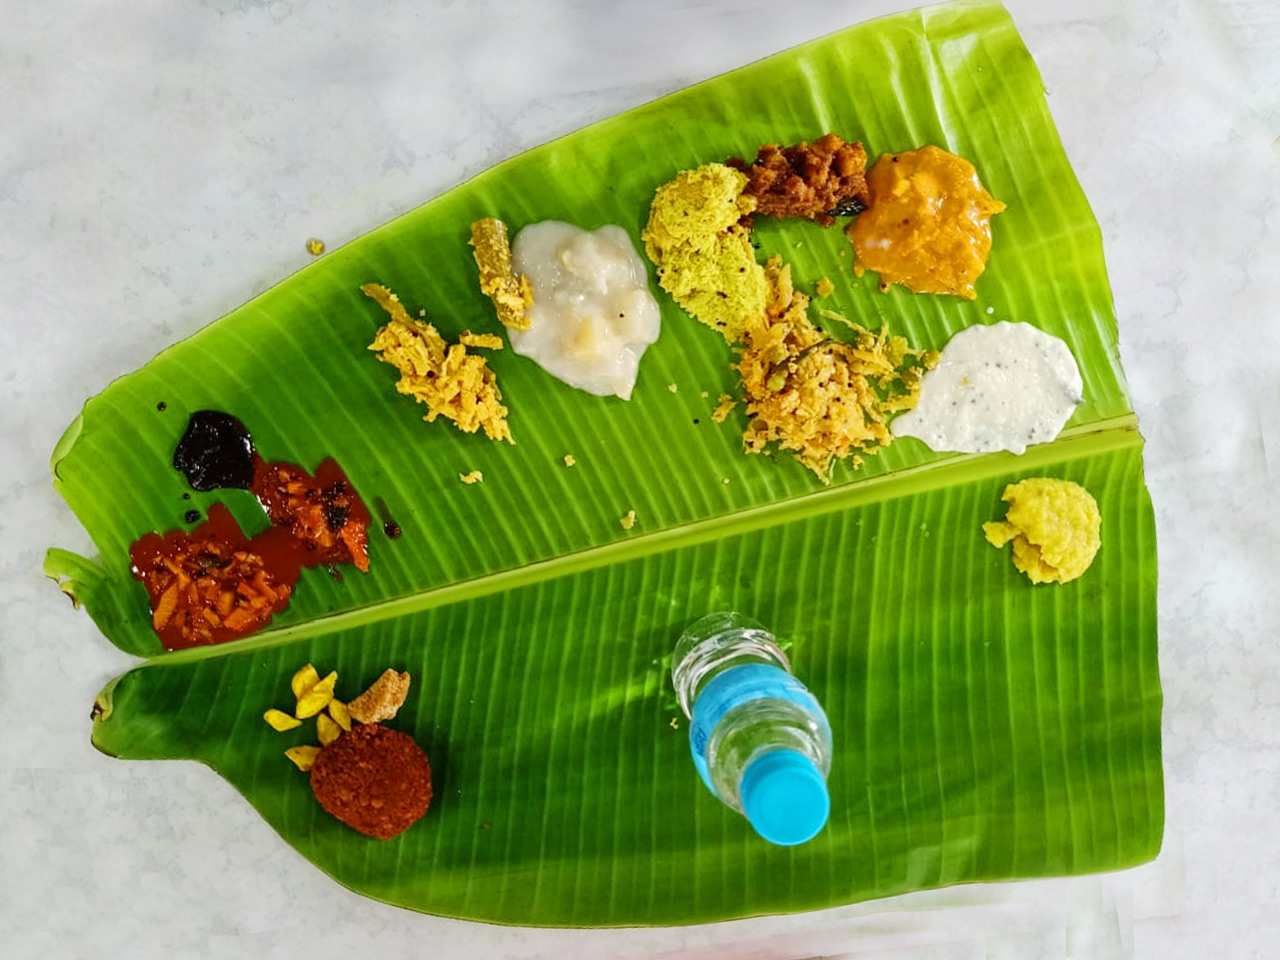 Catering services in guruvayur